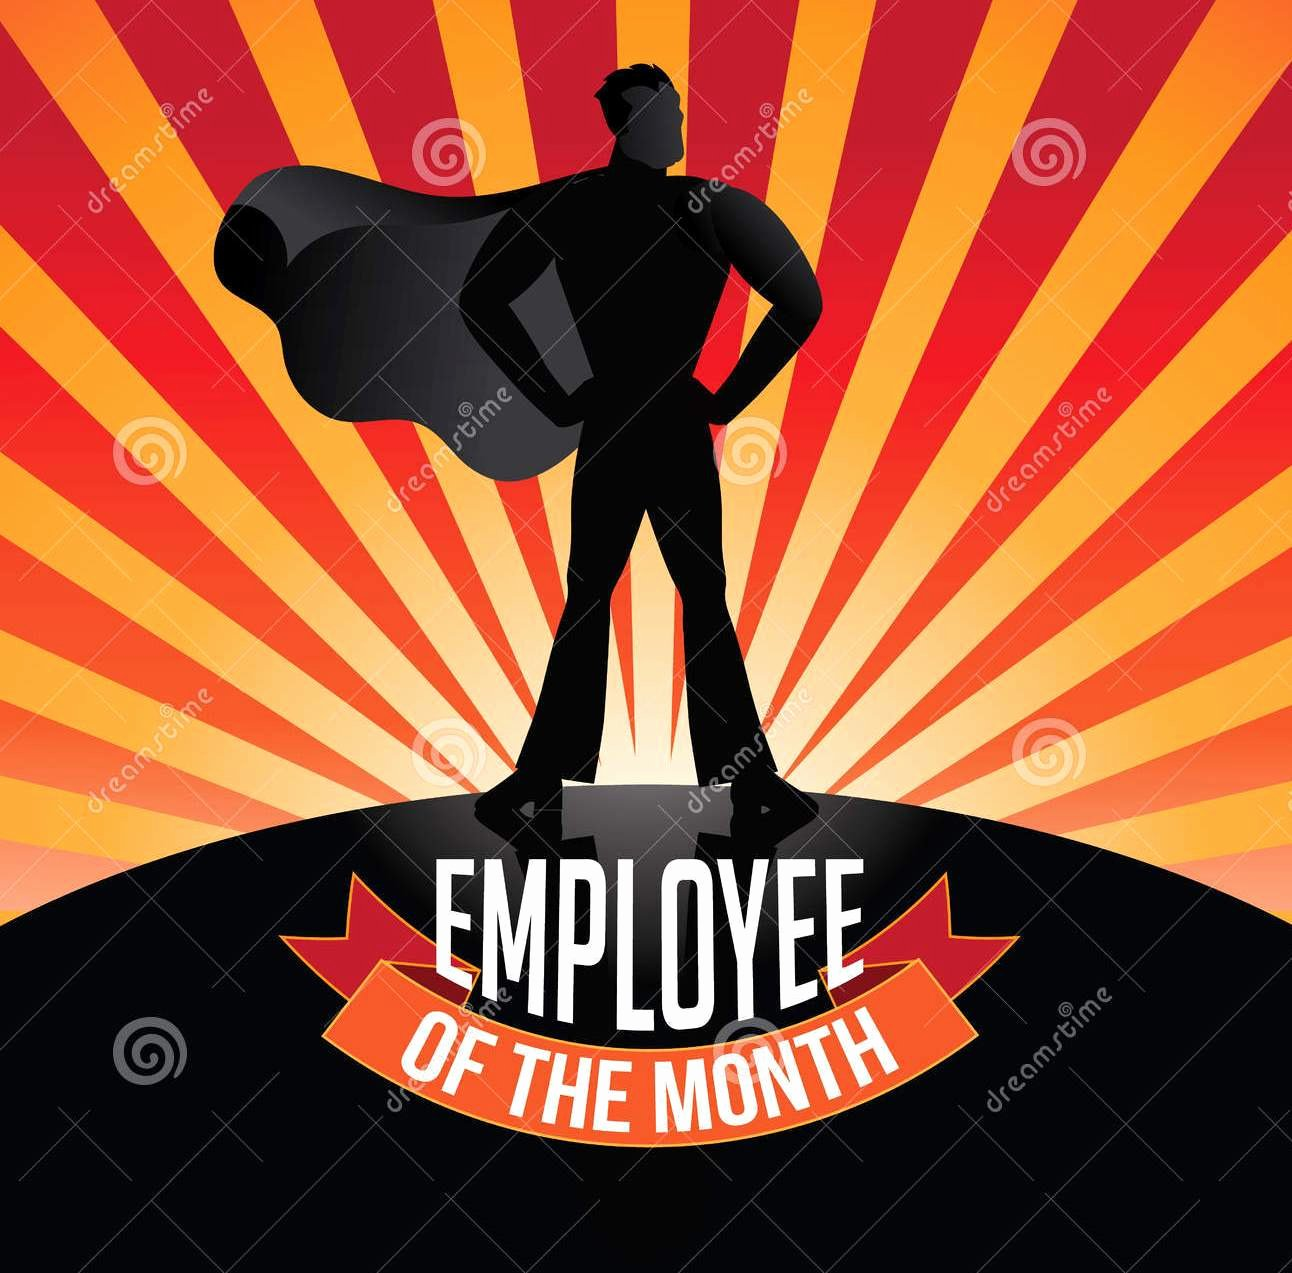 Employee Of the Month Photo Lovely Employee Of the Month Archives Website Development